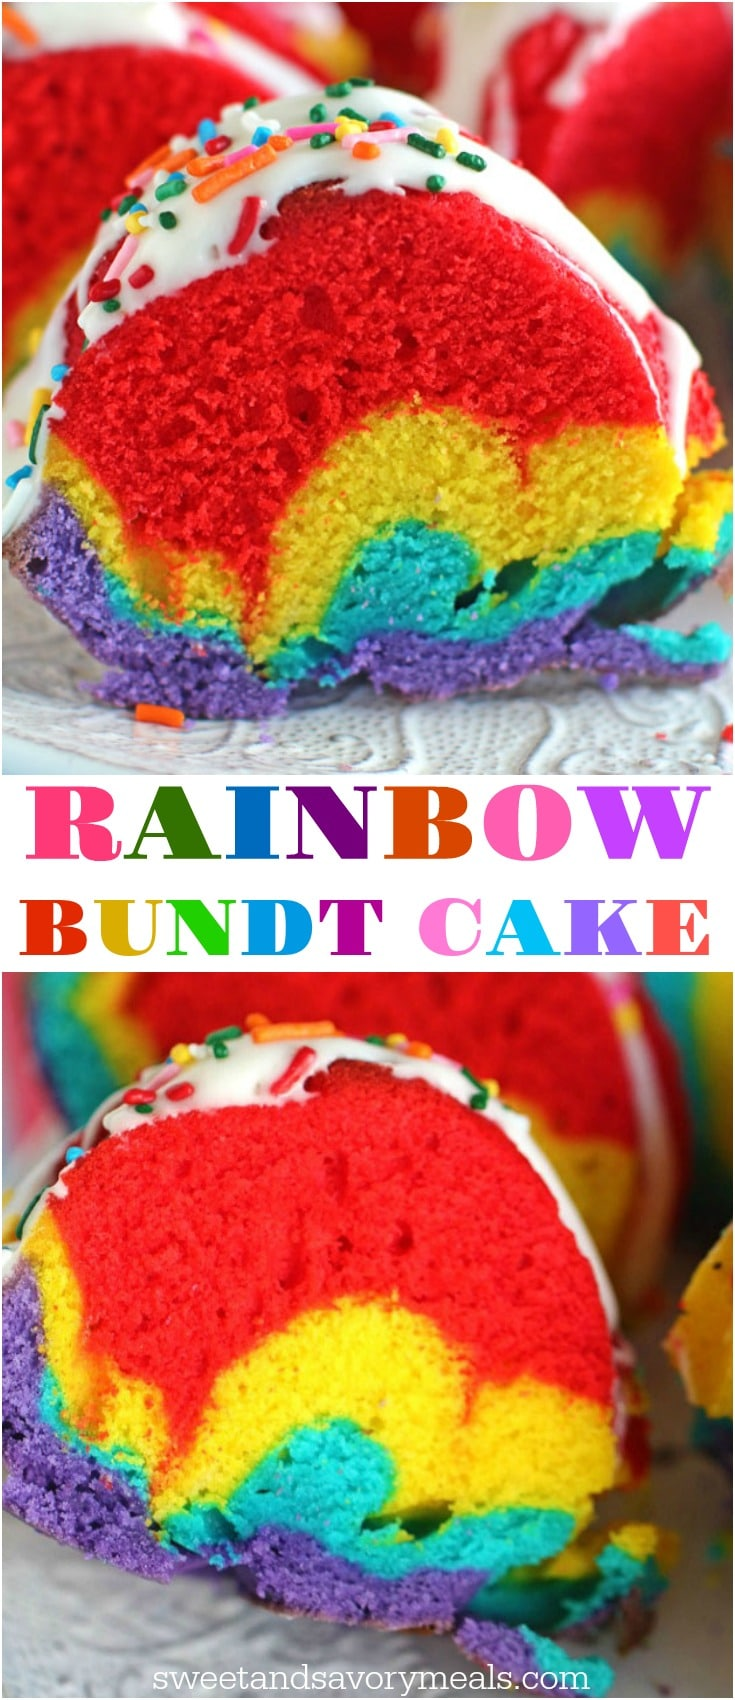 Rainbow Bundt Cake is very easy and fun to make, the gorgeous colors make the cake festive and perfect for a special occasion.